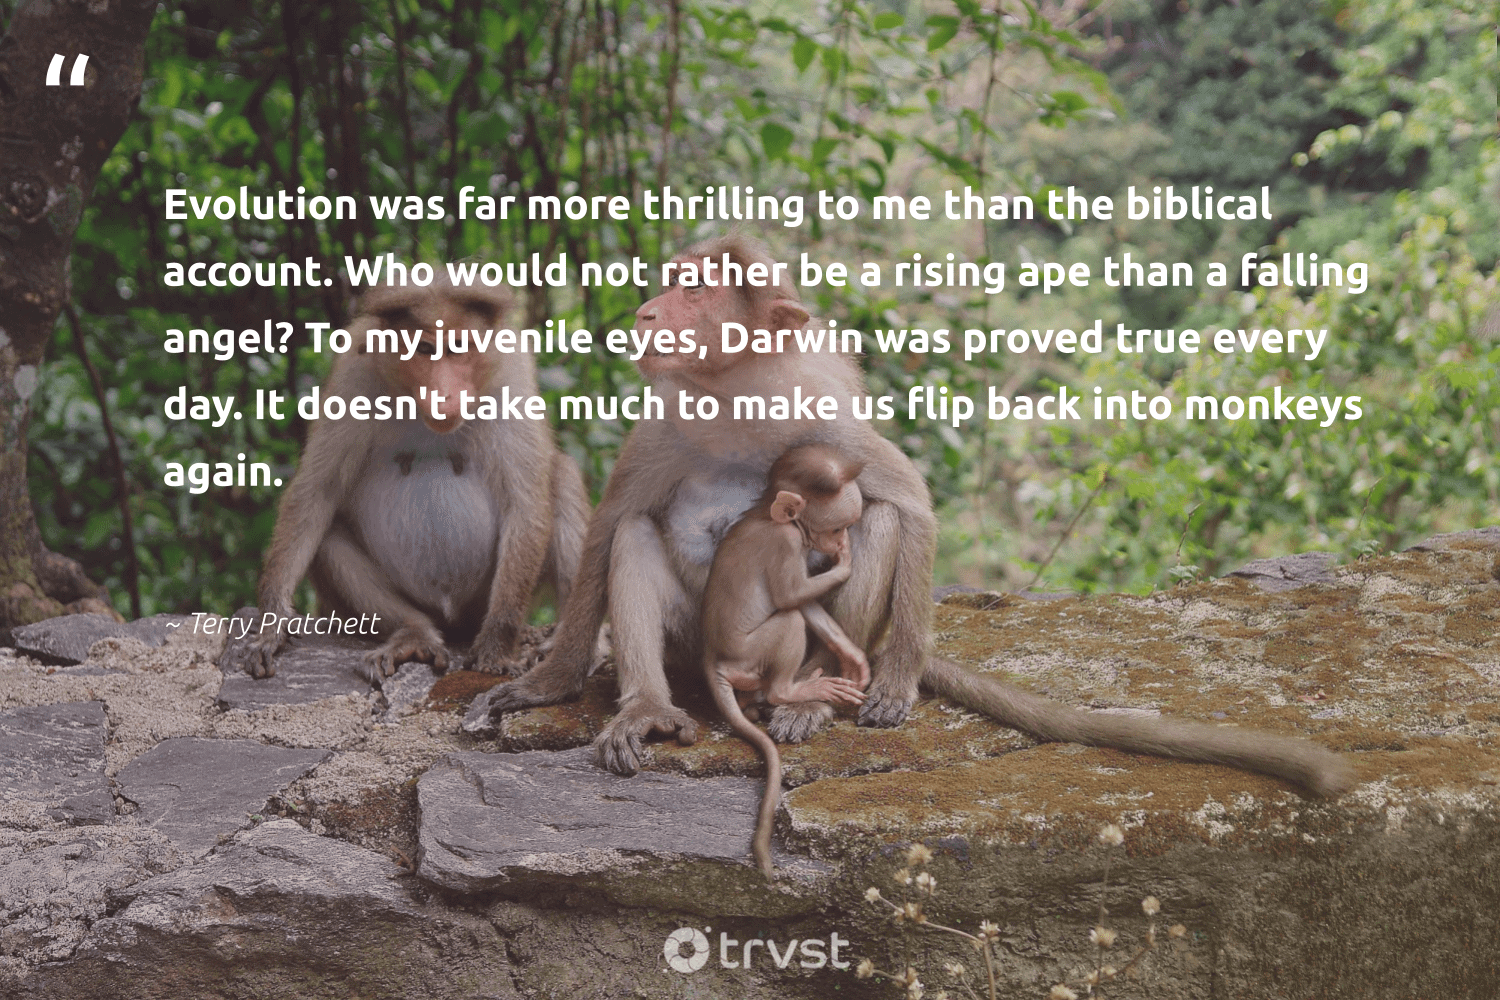 """""""Evolution was far more thrilling to me than the biblical account. Who would not rather be a rising ape than a falling angel? To my juvenile eyes, Darwin was proved true every day. It doesn't take much to make us flip back into monkeys again.""""  - Terry Pratchett #trvst #quotes #monkeys #amazingworld #takeaction #majesticwildlife #socialimpact #animalphotography #dogood #splendidanimals #beinspired #sustainability"""